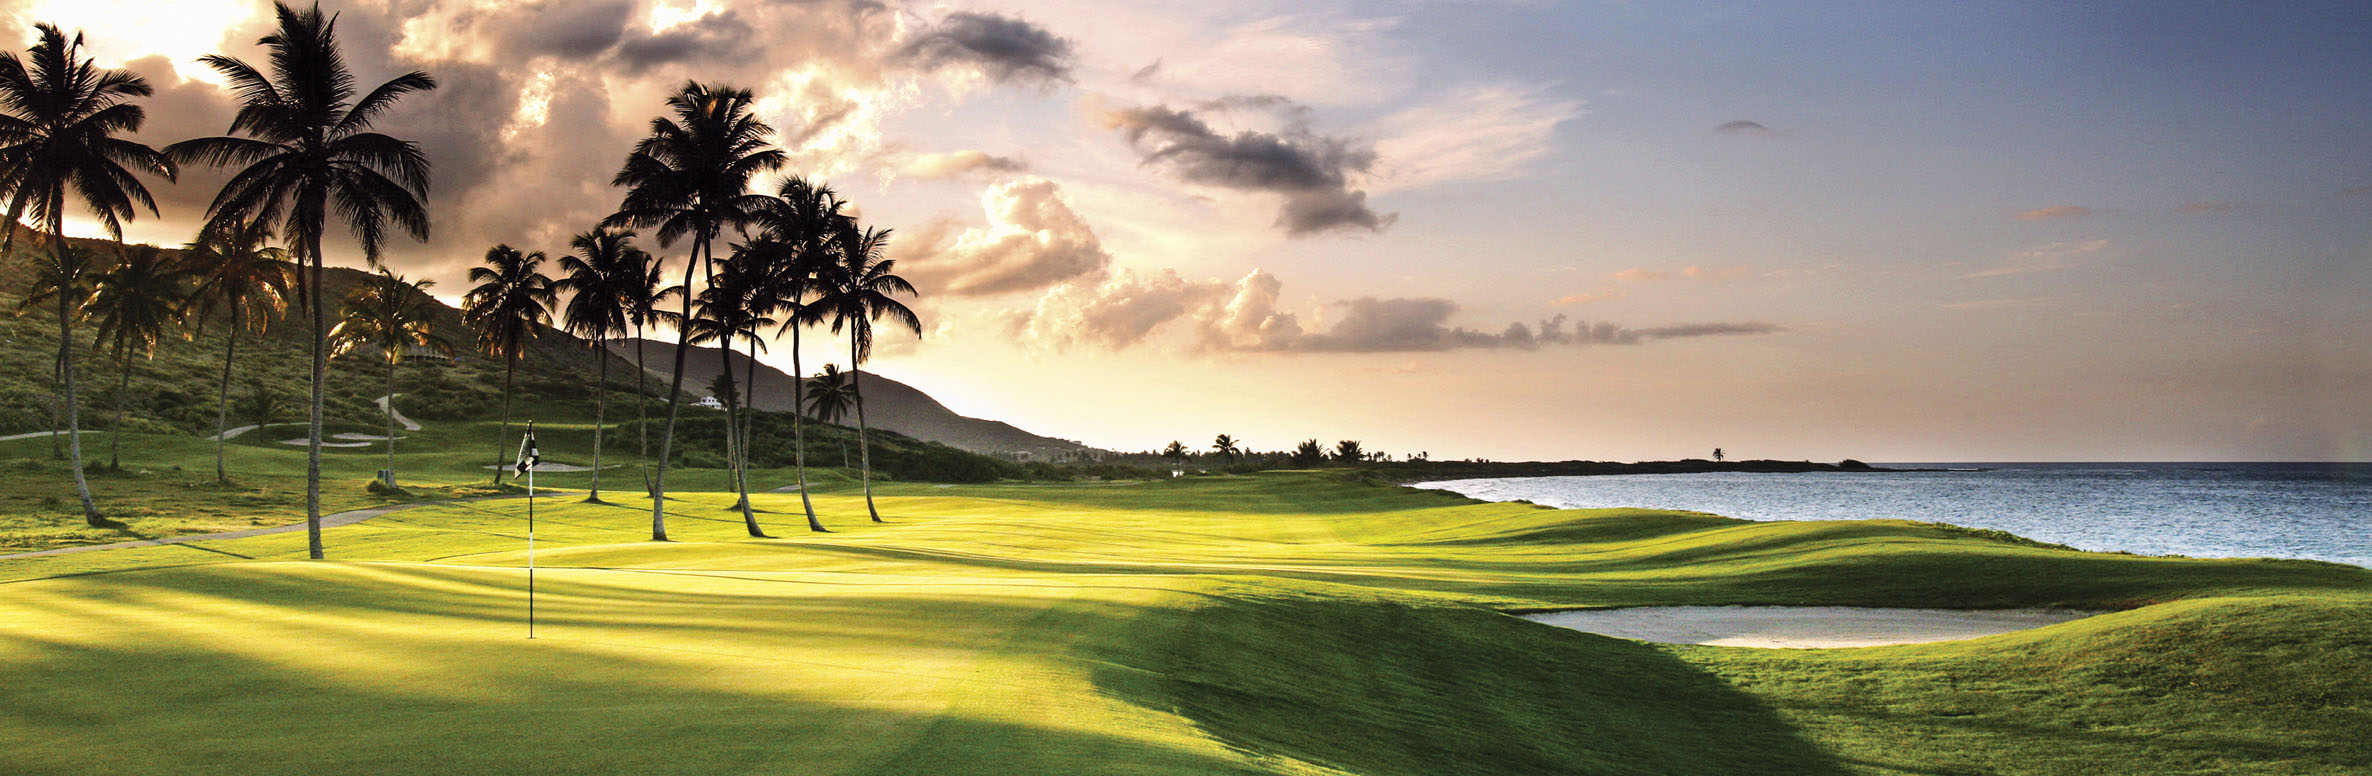 Golf Course Image - Royal St. Kitts Golf Club No. 16